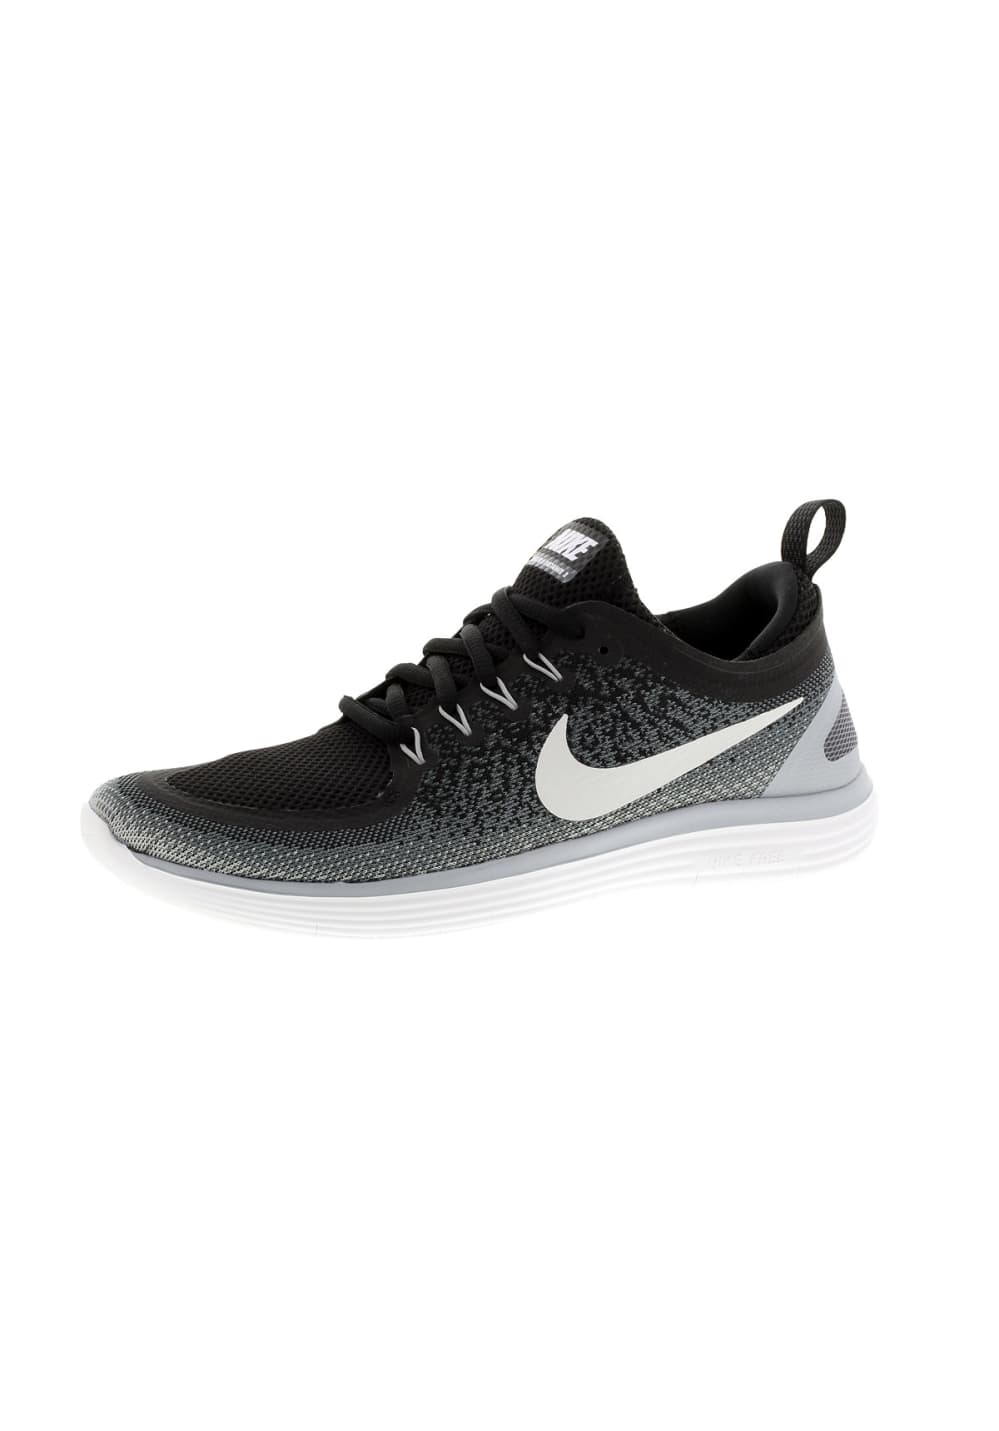 Nike Free RN Distance 2 - Running shoes for Women - Black  4a348ab6d6858